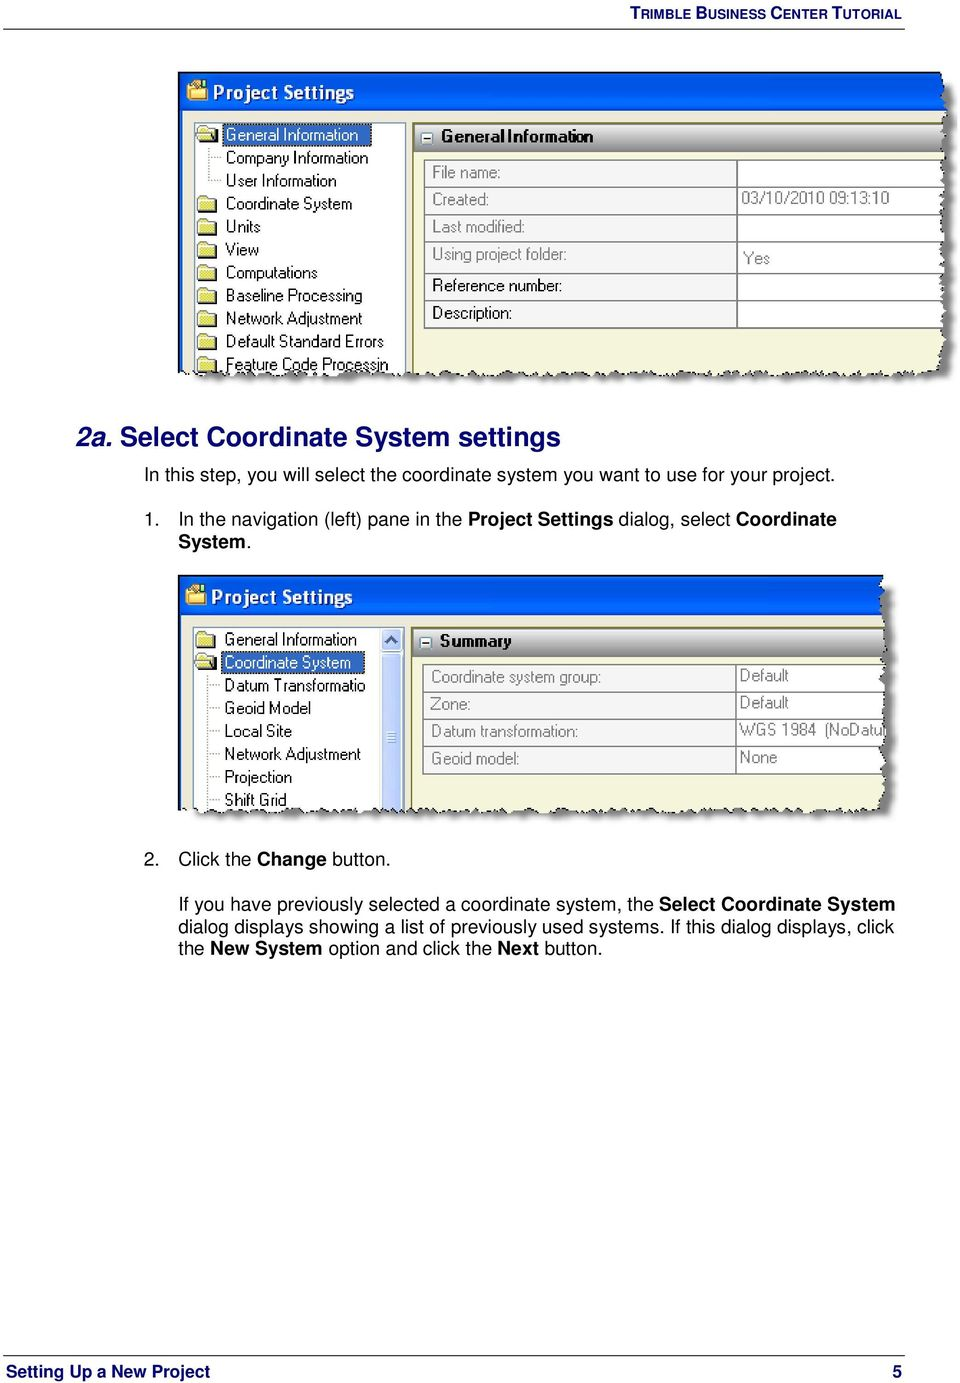 If you have previously selected a coordinate system, the Select Coordinate System dialog displays showing a list of